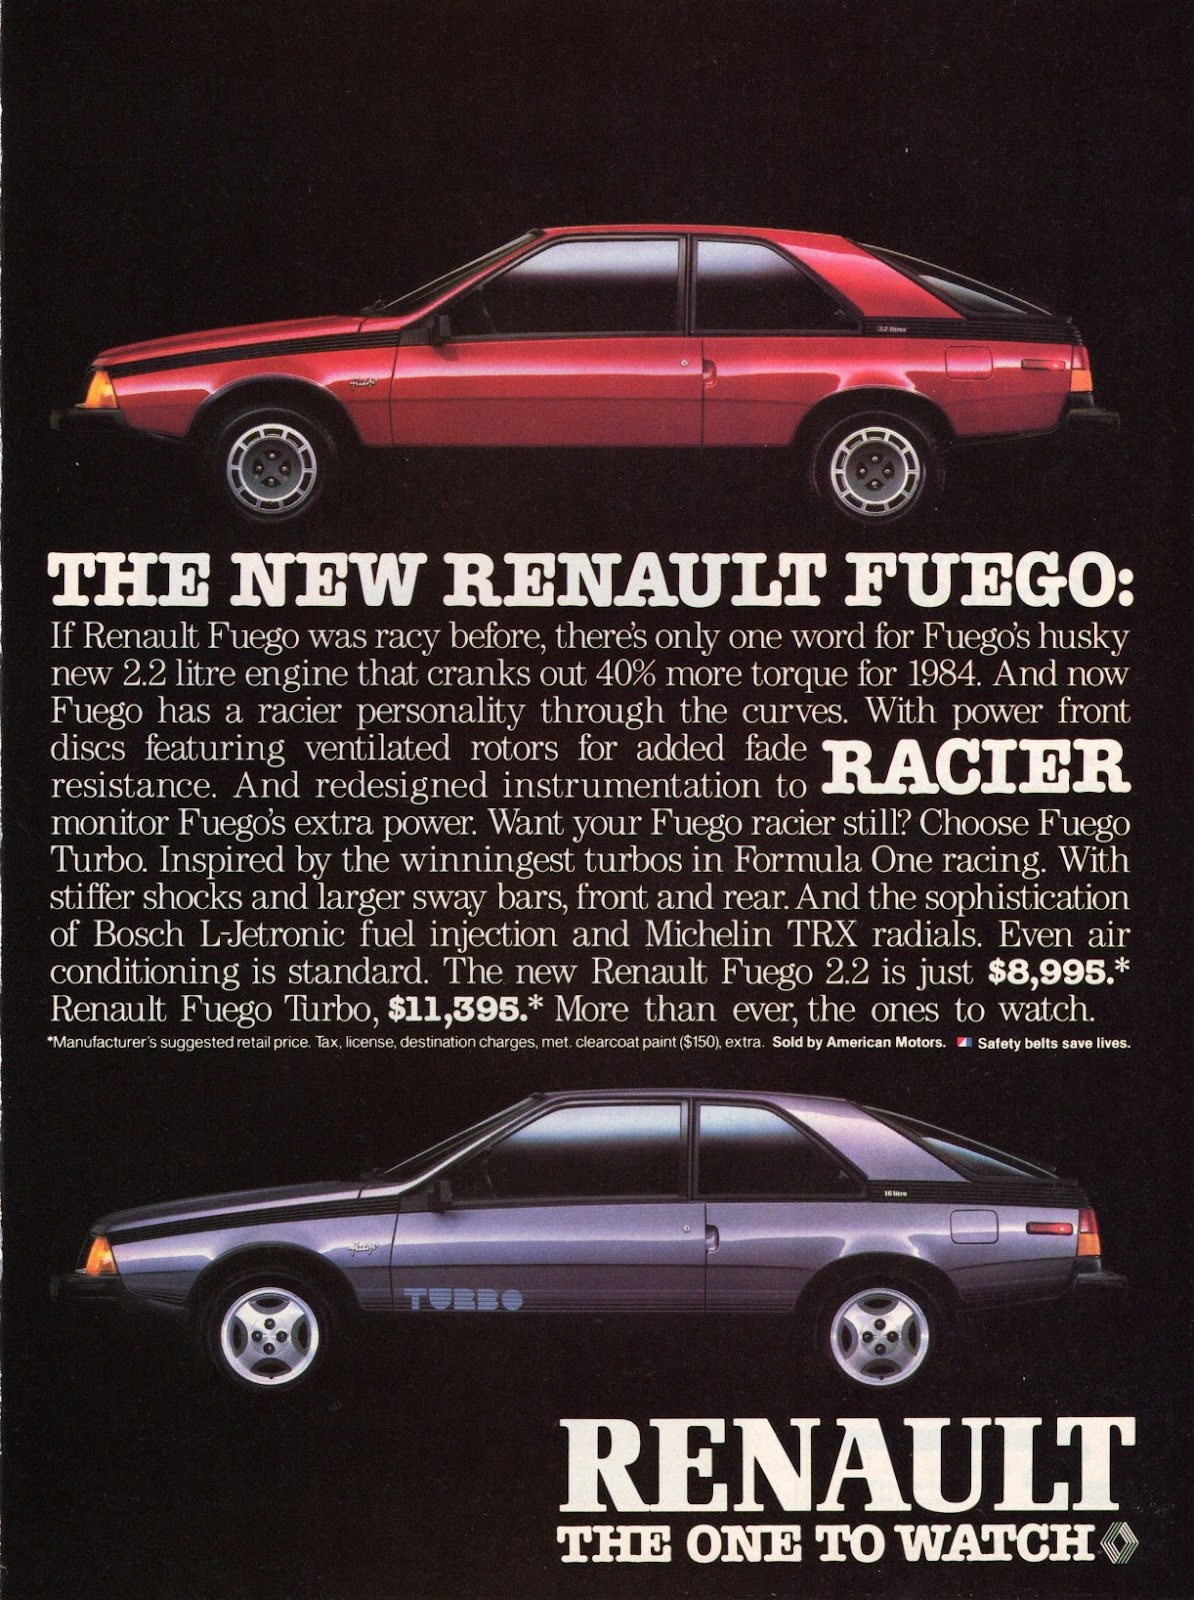 1984-Renault-Fuego-2.2-and-Fuego-Turbo.jpg